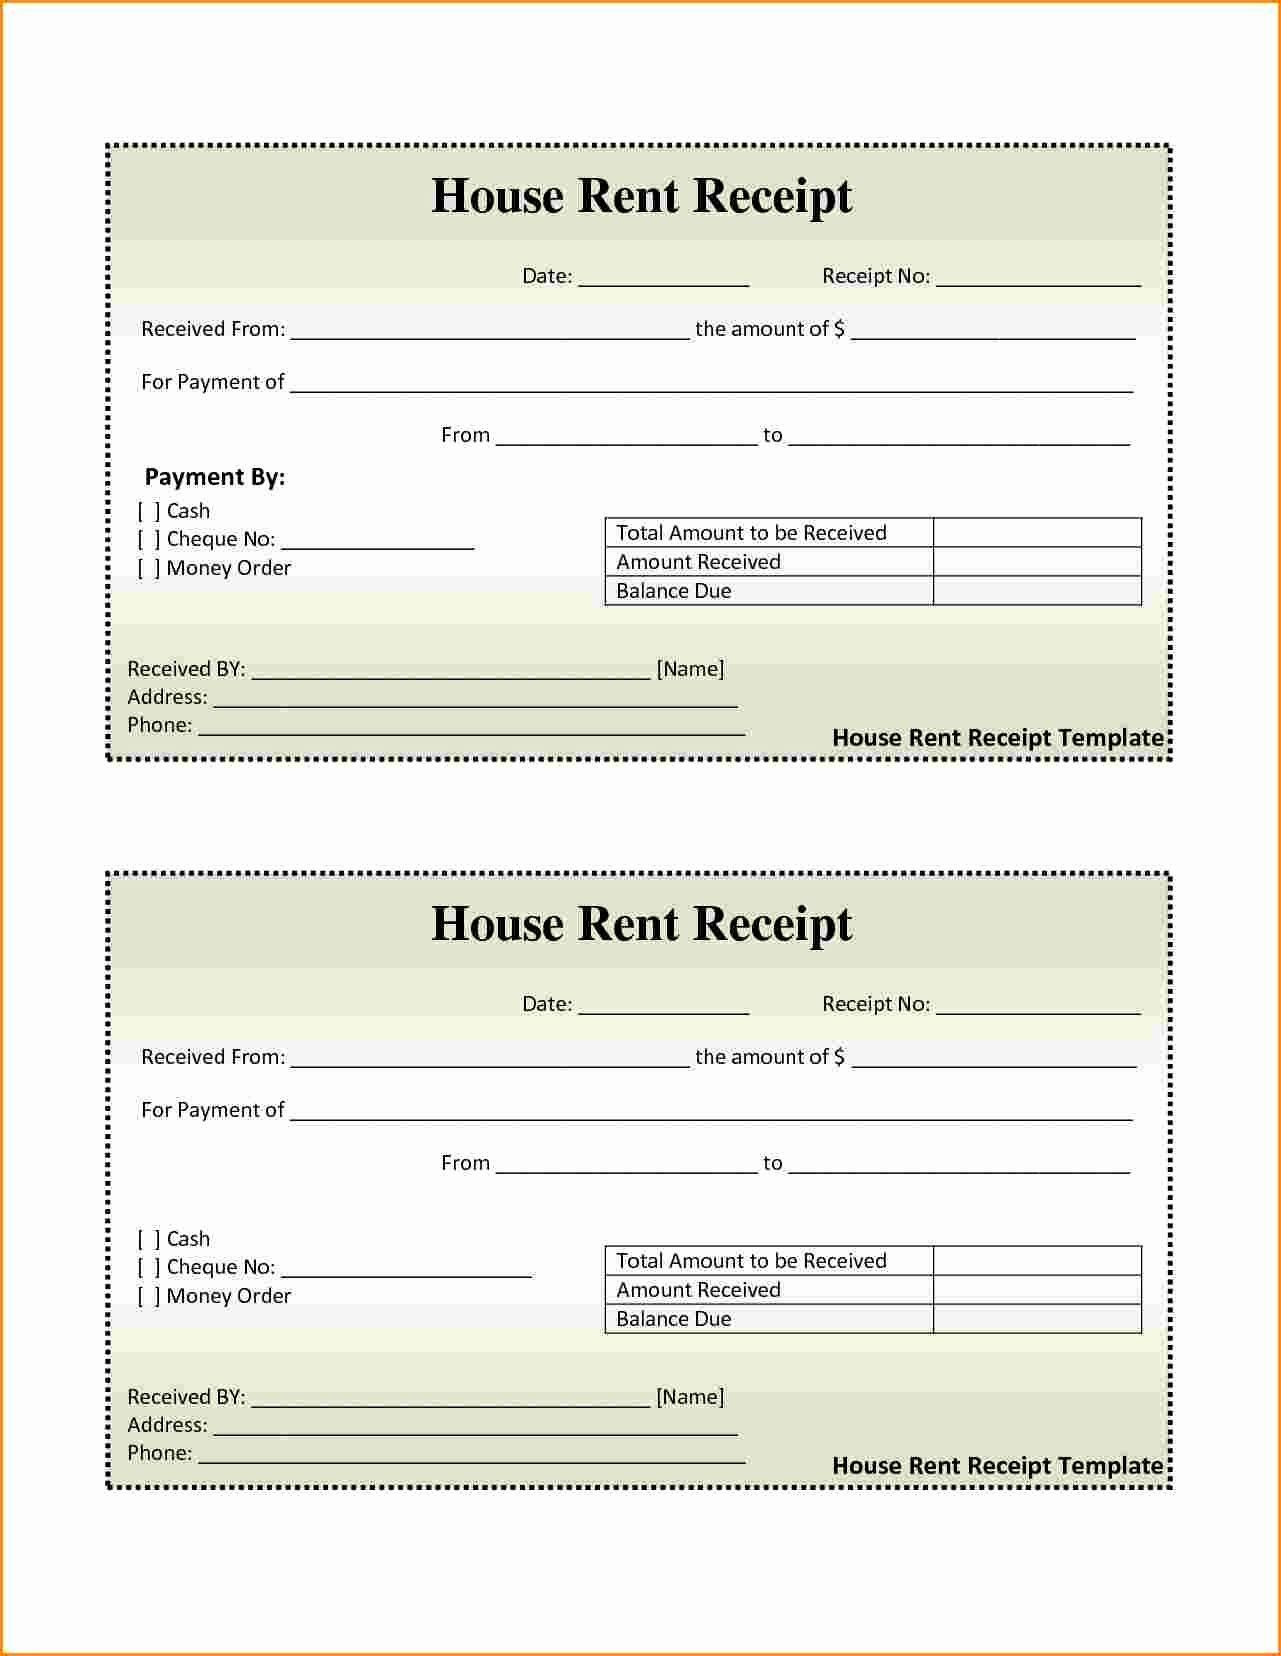 001 Awesome House Rent Receipt Sample Doc Idea  Template Word Document Free Download Format For Income Tax